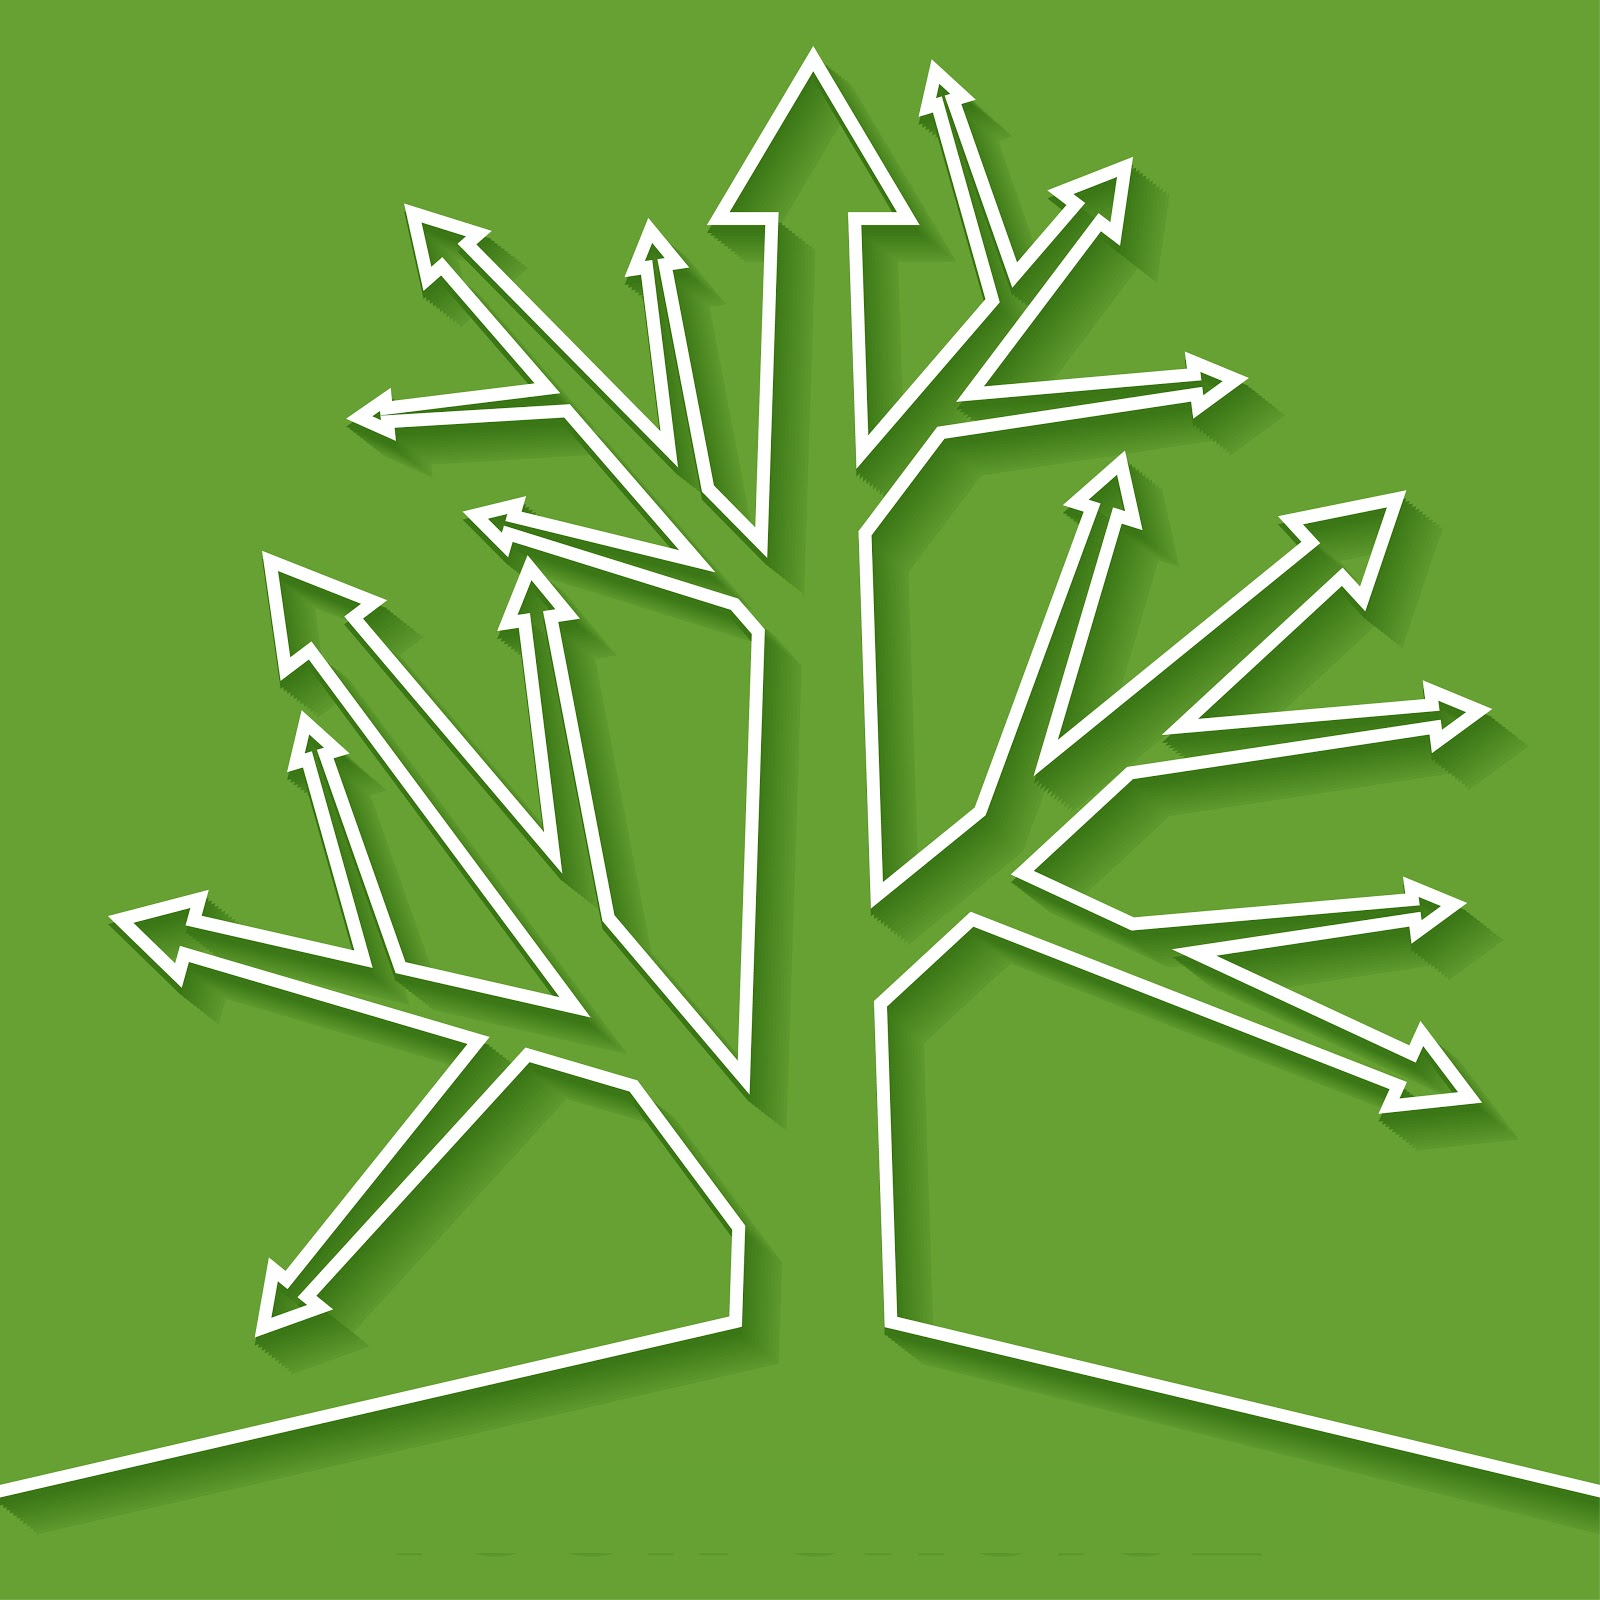 White tree of arrows on green background showing idea of decision trees